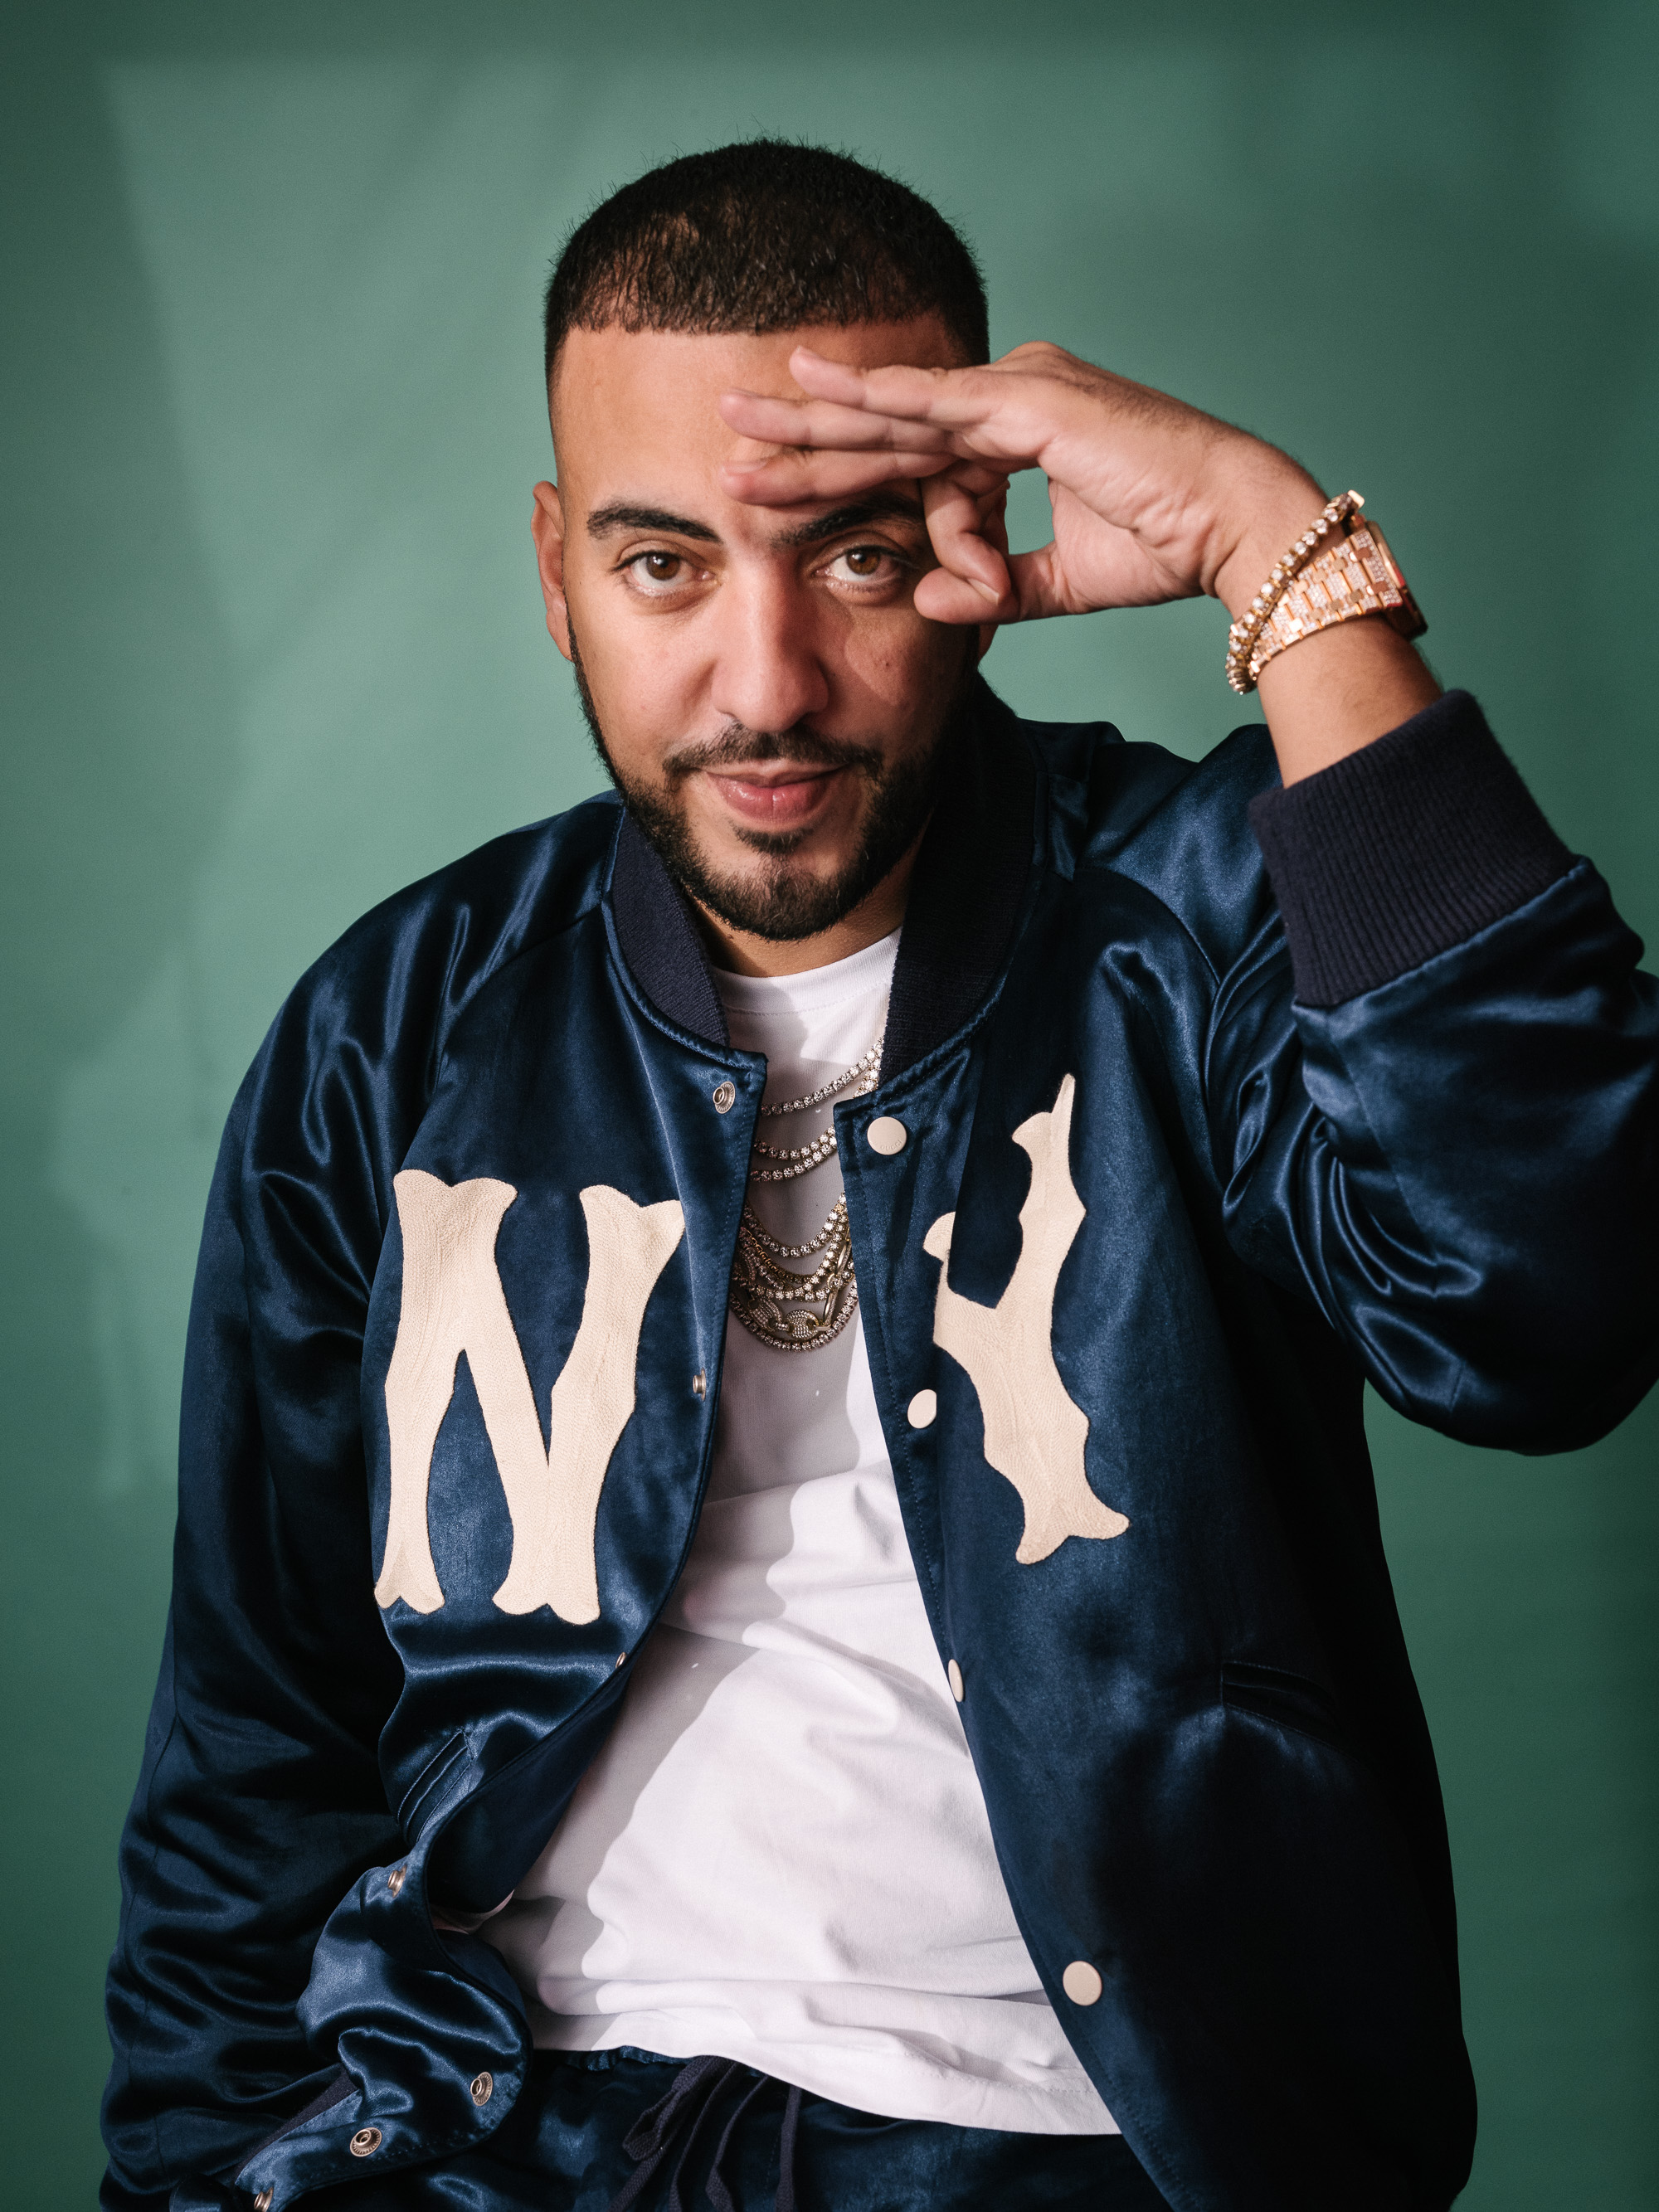 081818-BILLBOARD_H100-FRENCH_MONTANA-1348.jpg